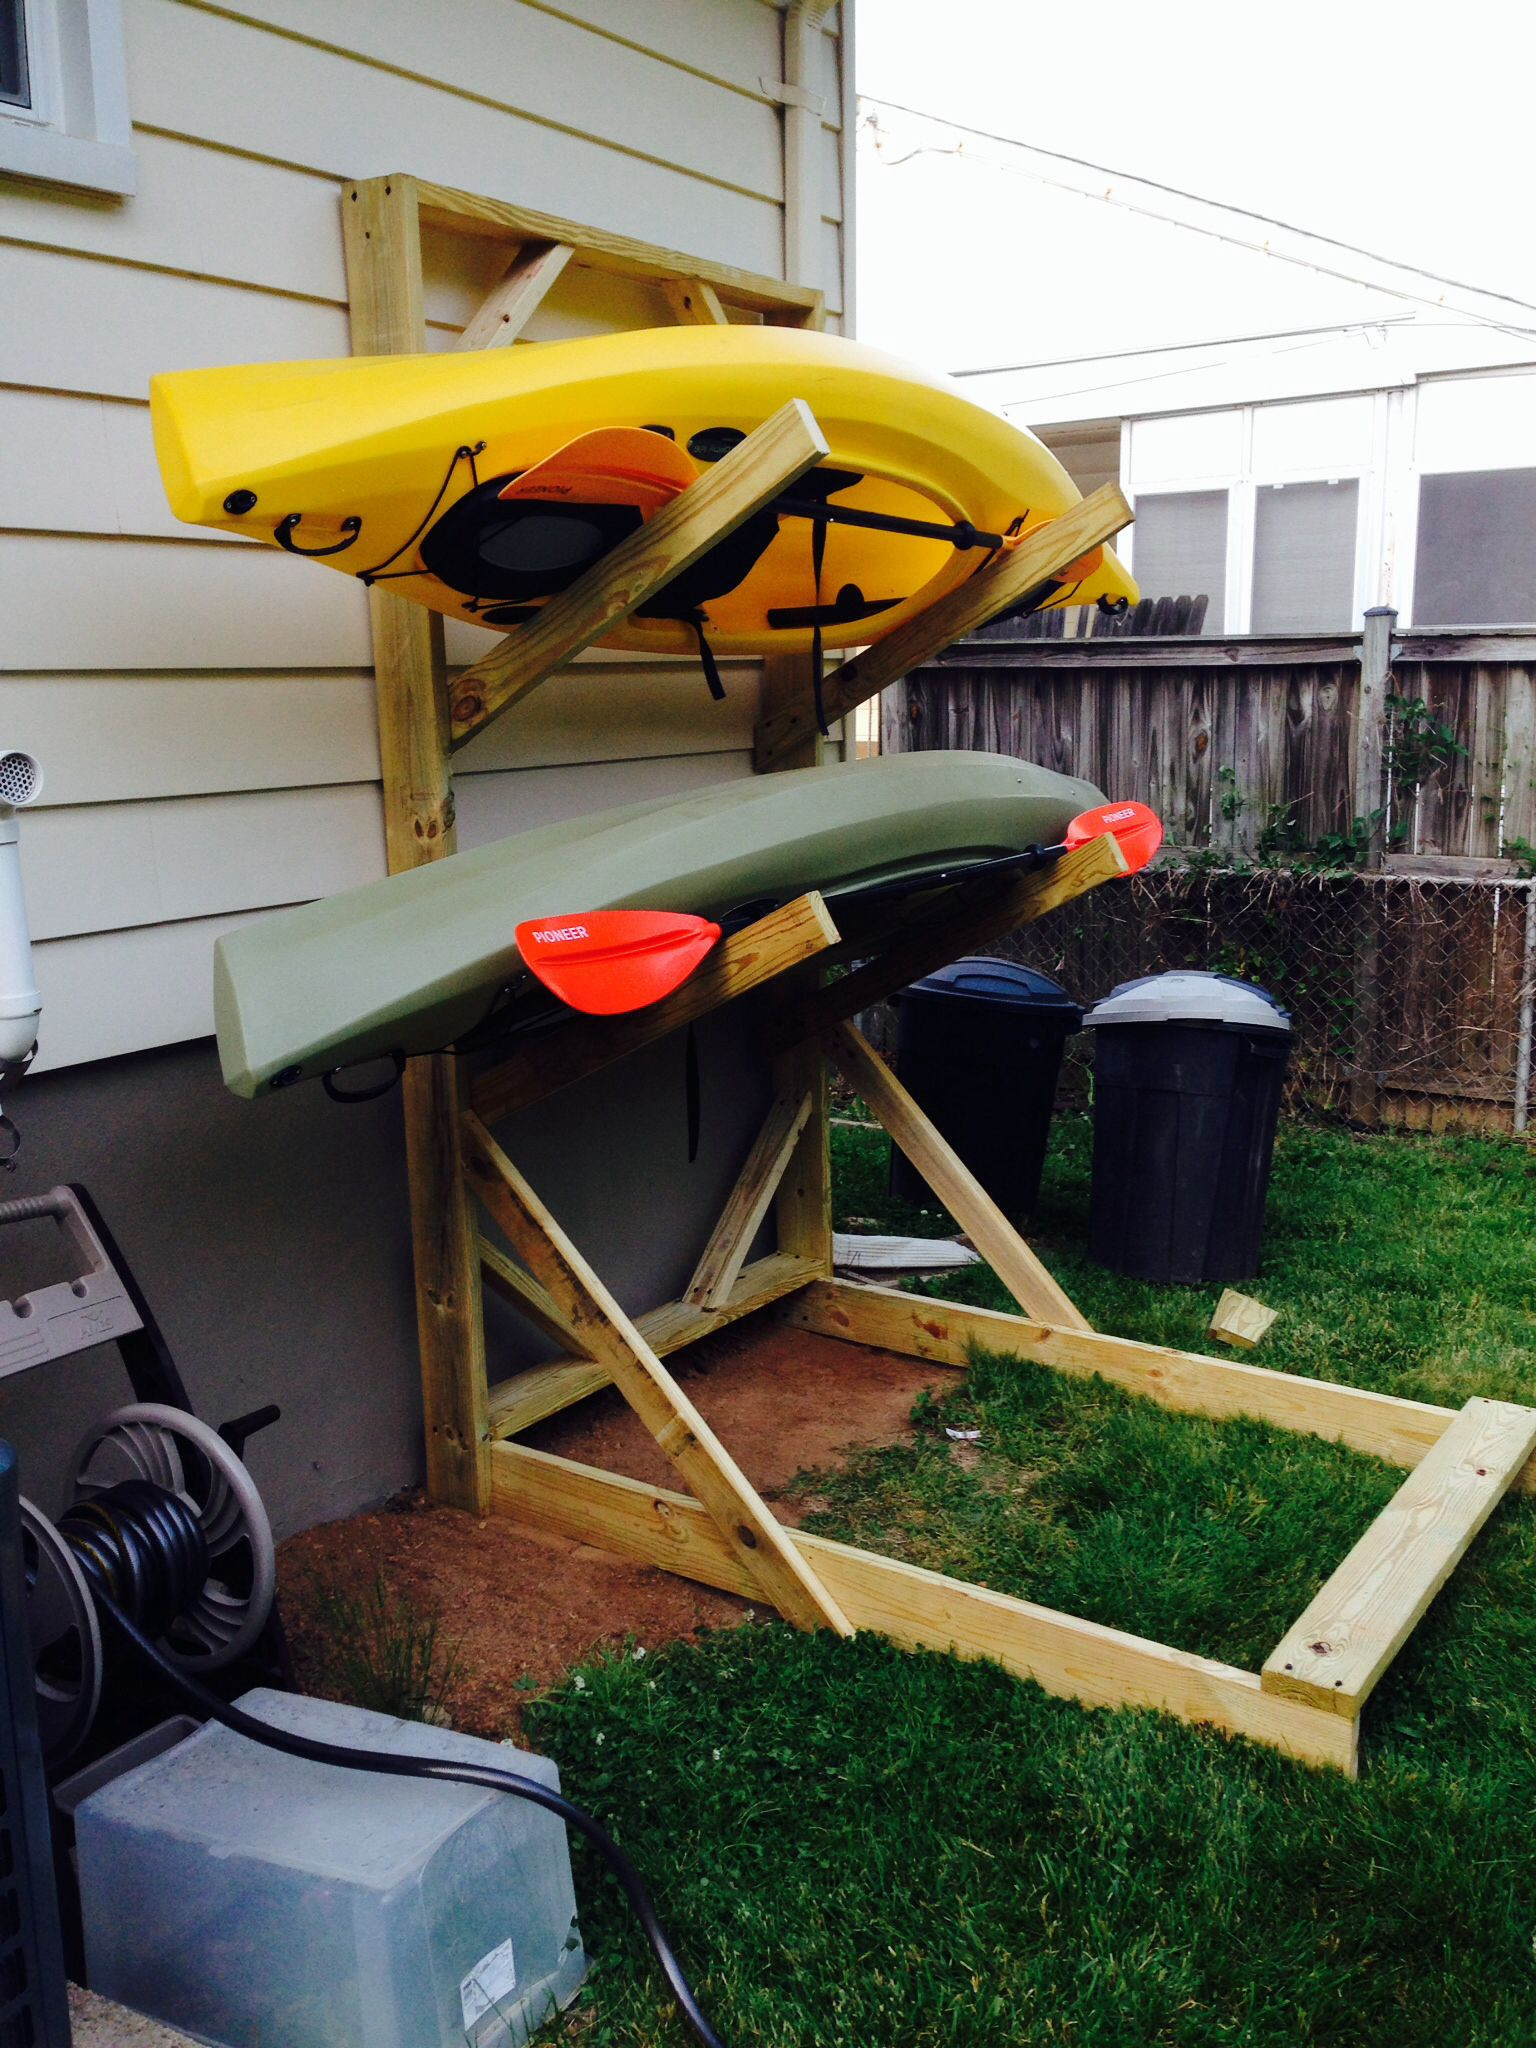 Best ideas about DIY Canoe Rack . Save or Pin plete Diy outdoor canoe storage rack J Bome Now.